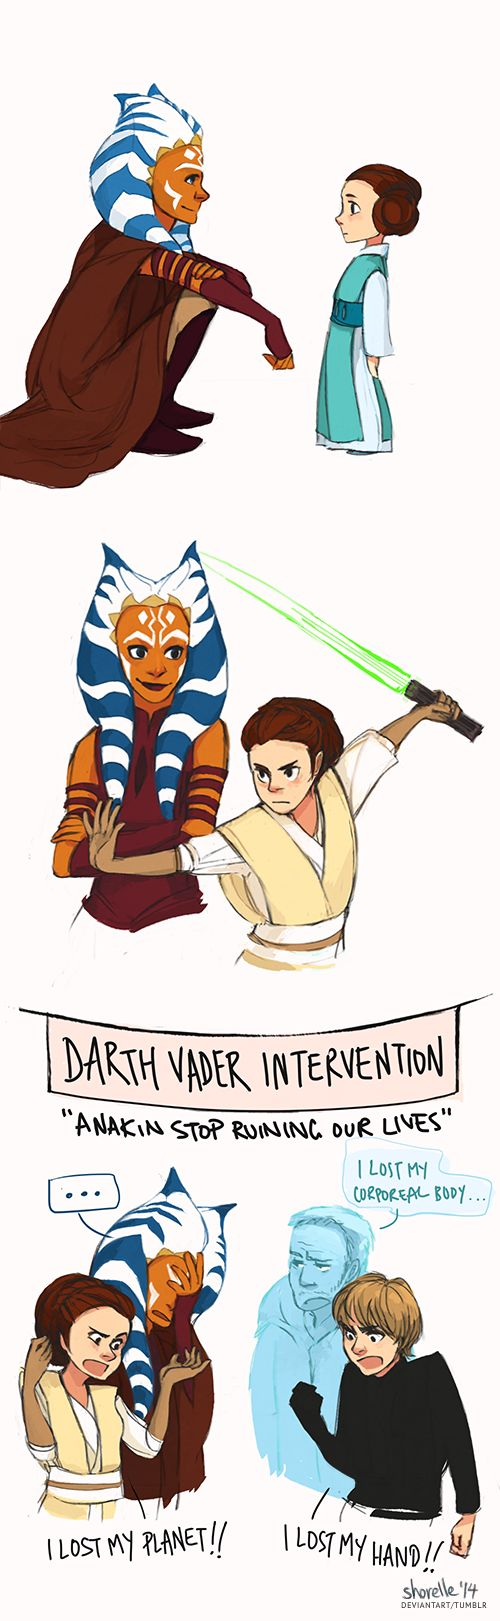 star wars - ahsoka and leia AU by shorelle.deviantart.com on @deviantART